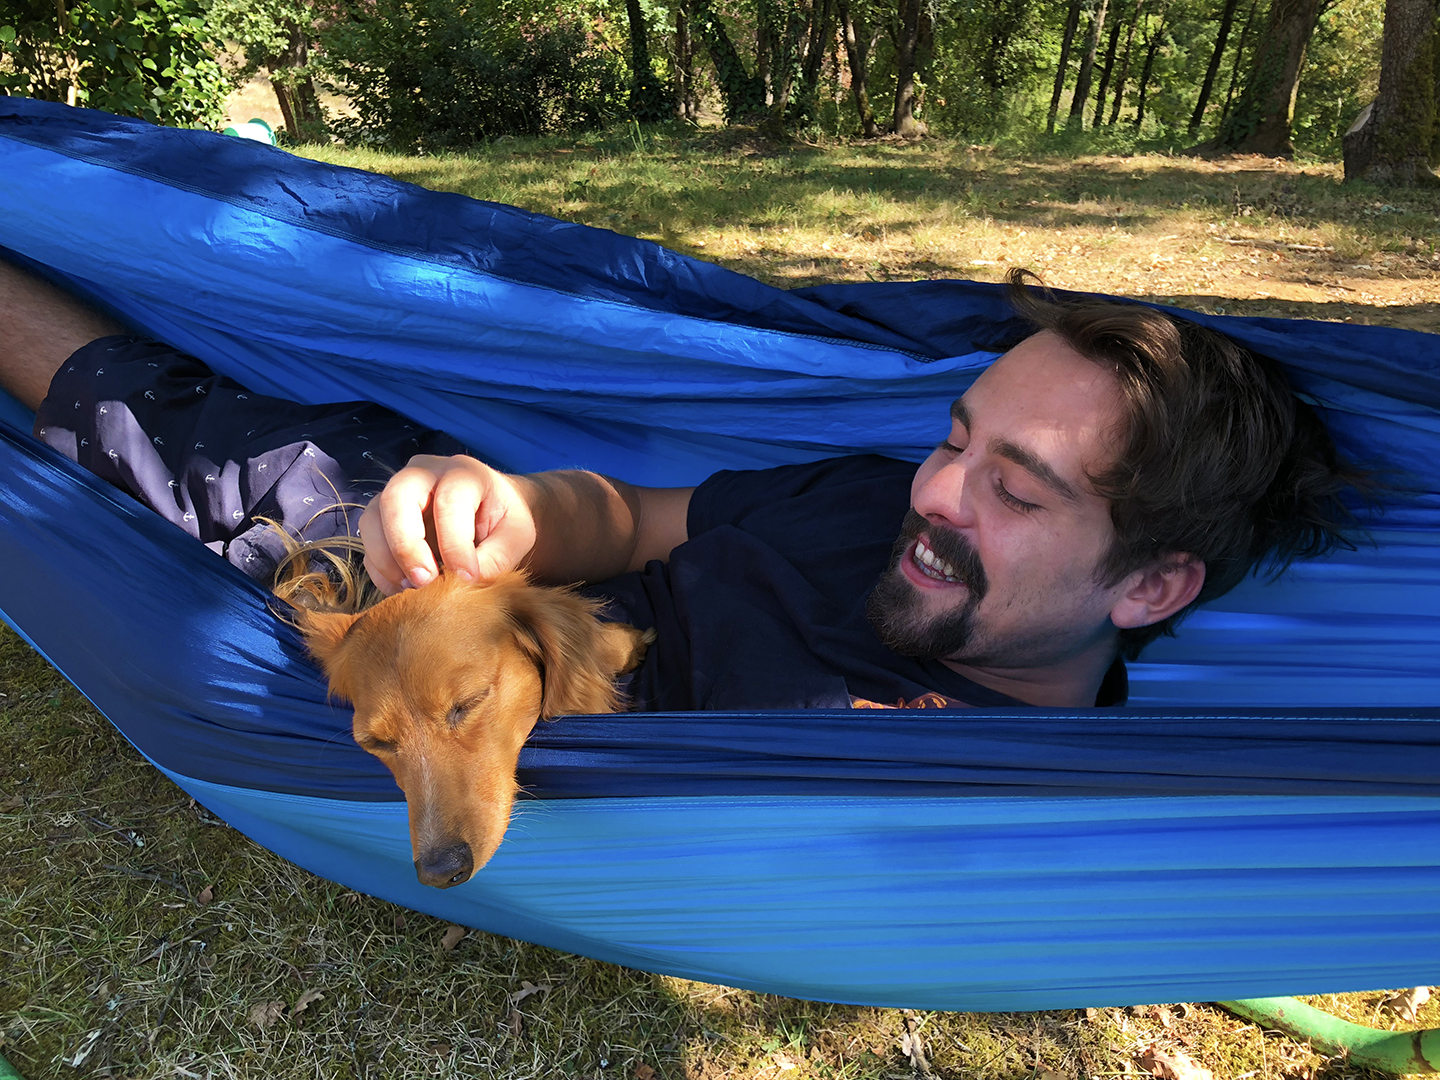 After a nice Sunday lunch, I got to nap in the hammock with Cousin Brice.